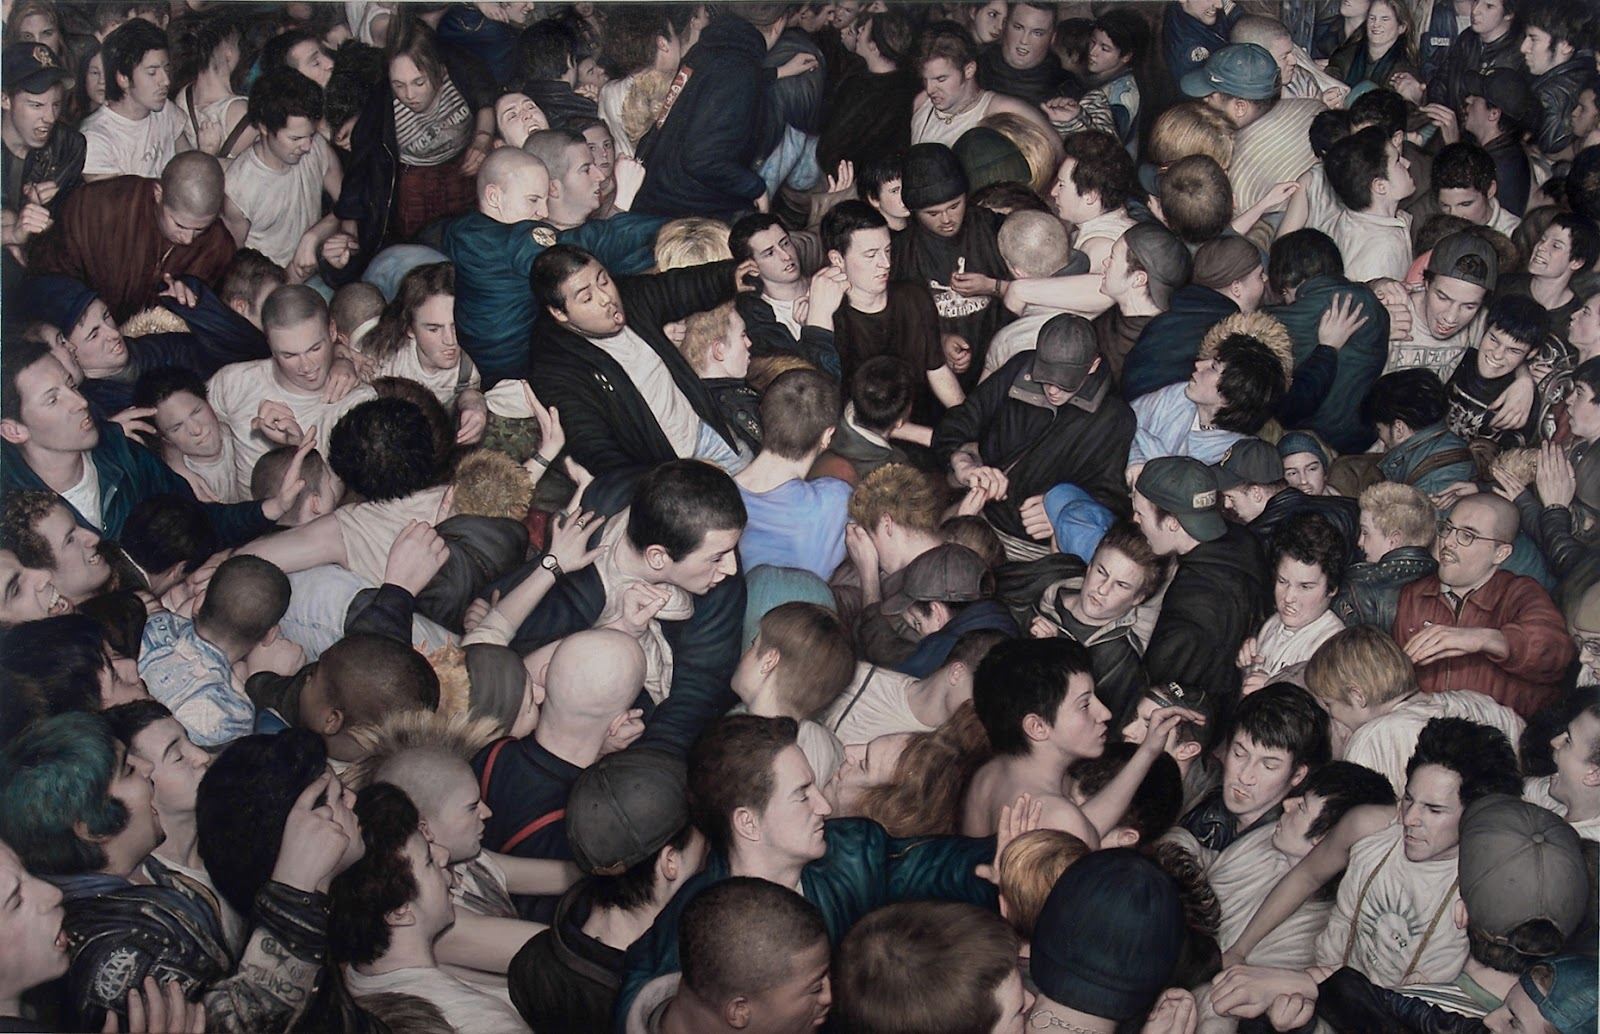 Big Mosh Pit - Dan Witz (2007), oil on canvas